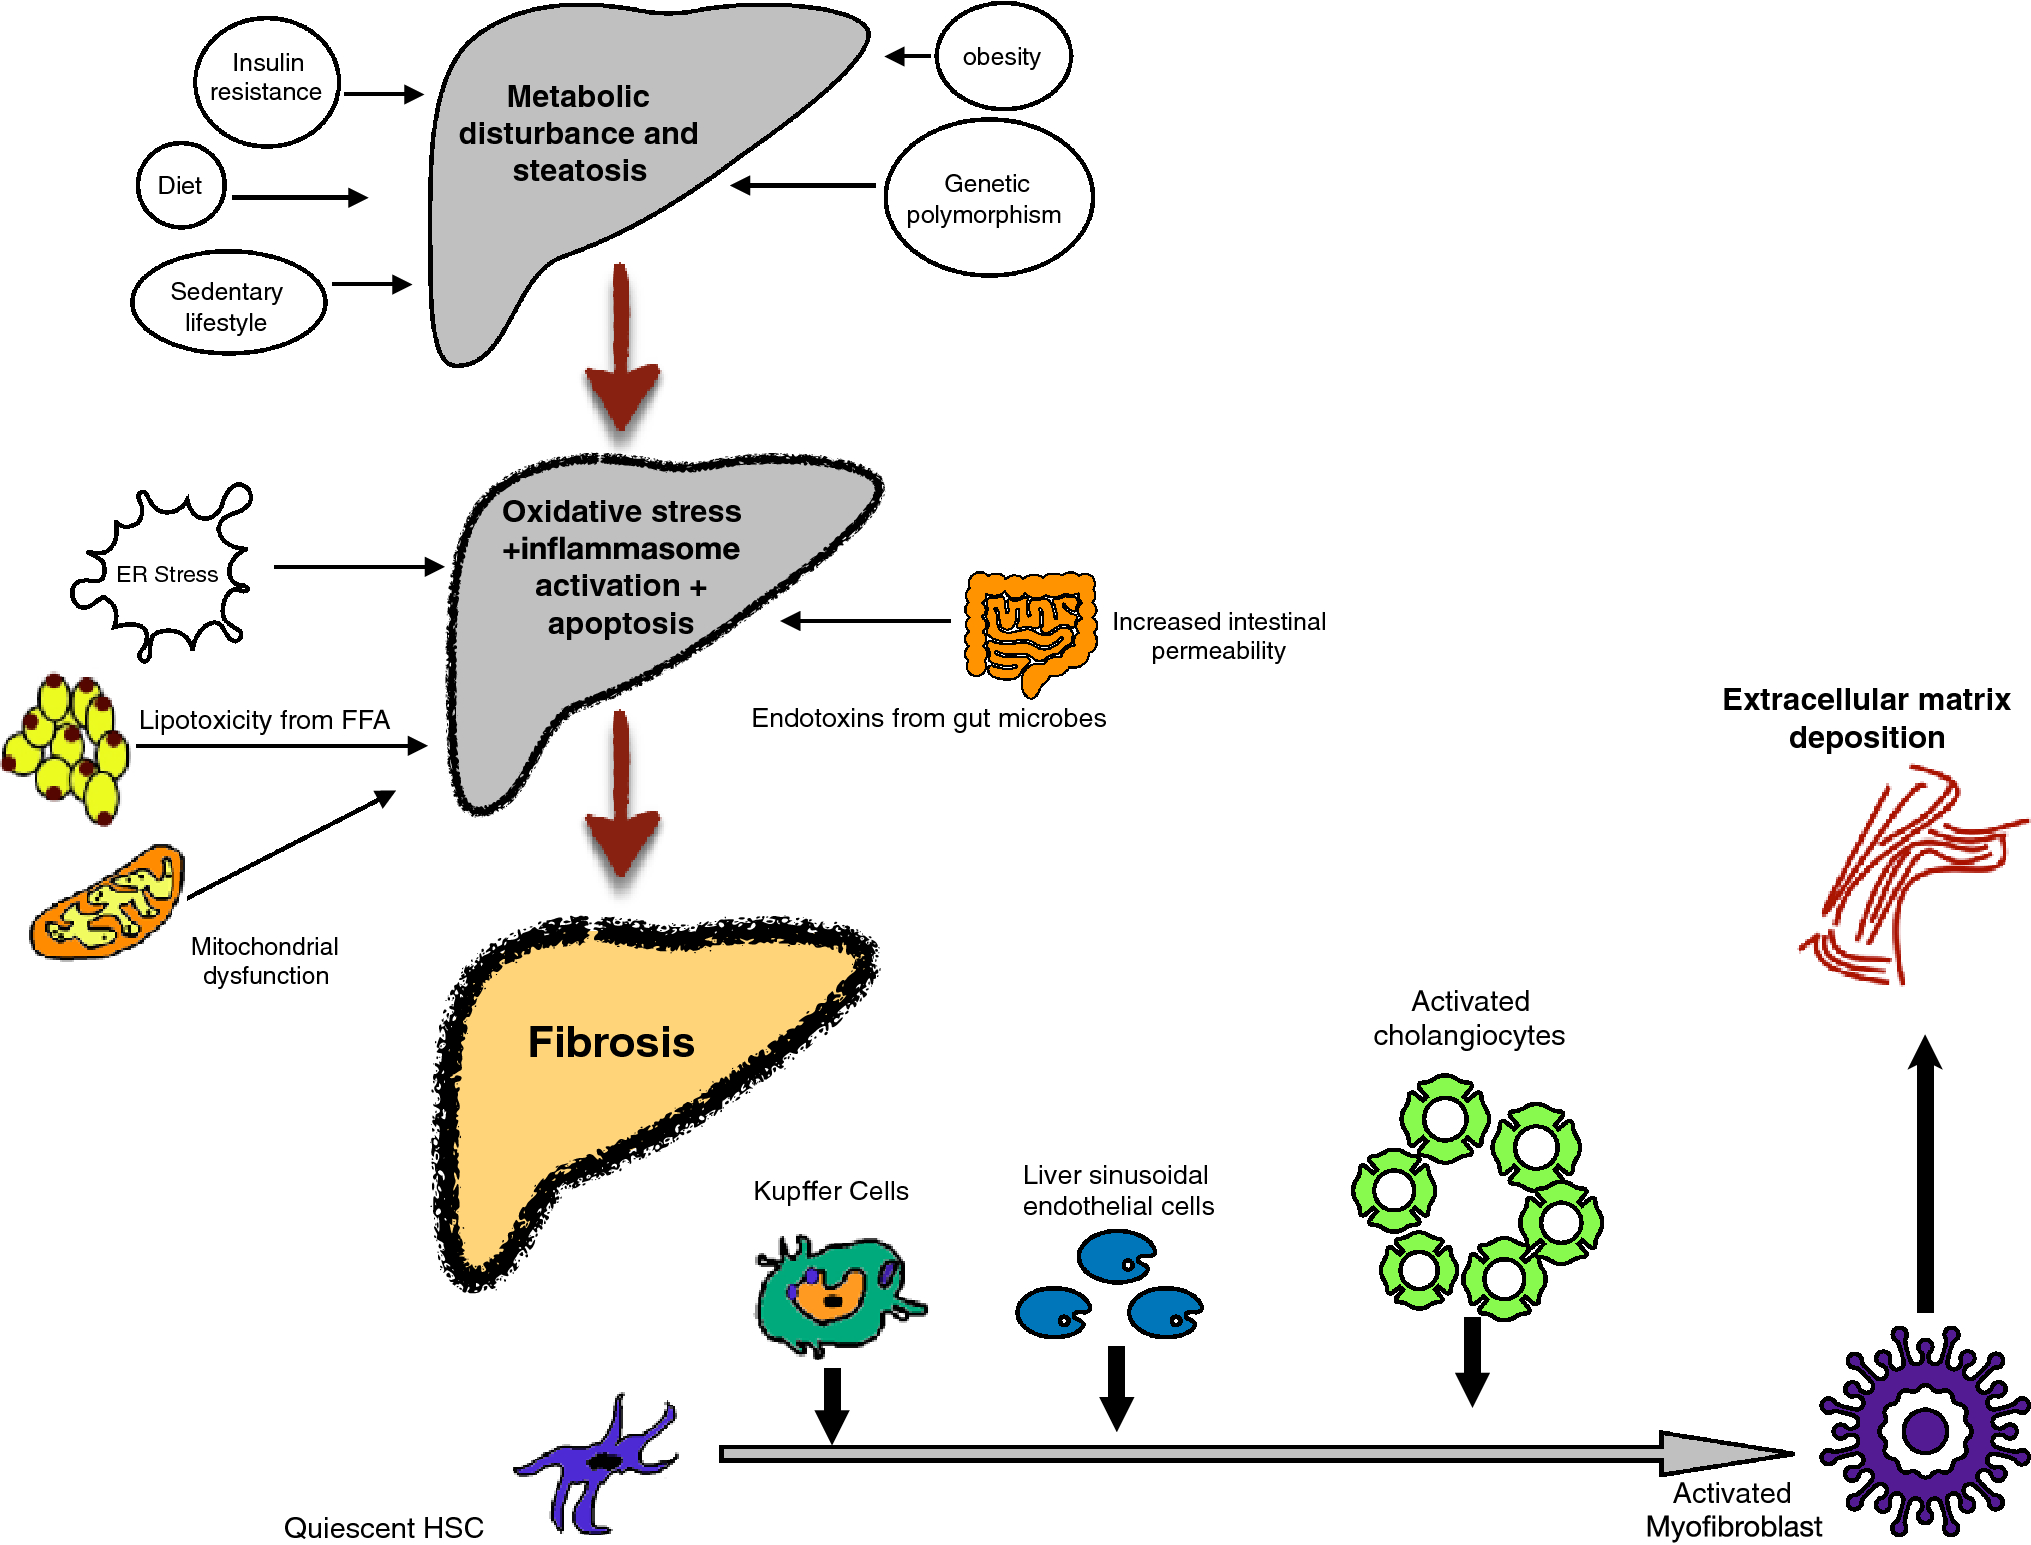 Reversal of NASH fibrosis with pharmacotherapy | SpringerLink